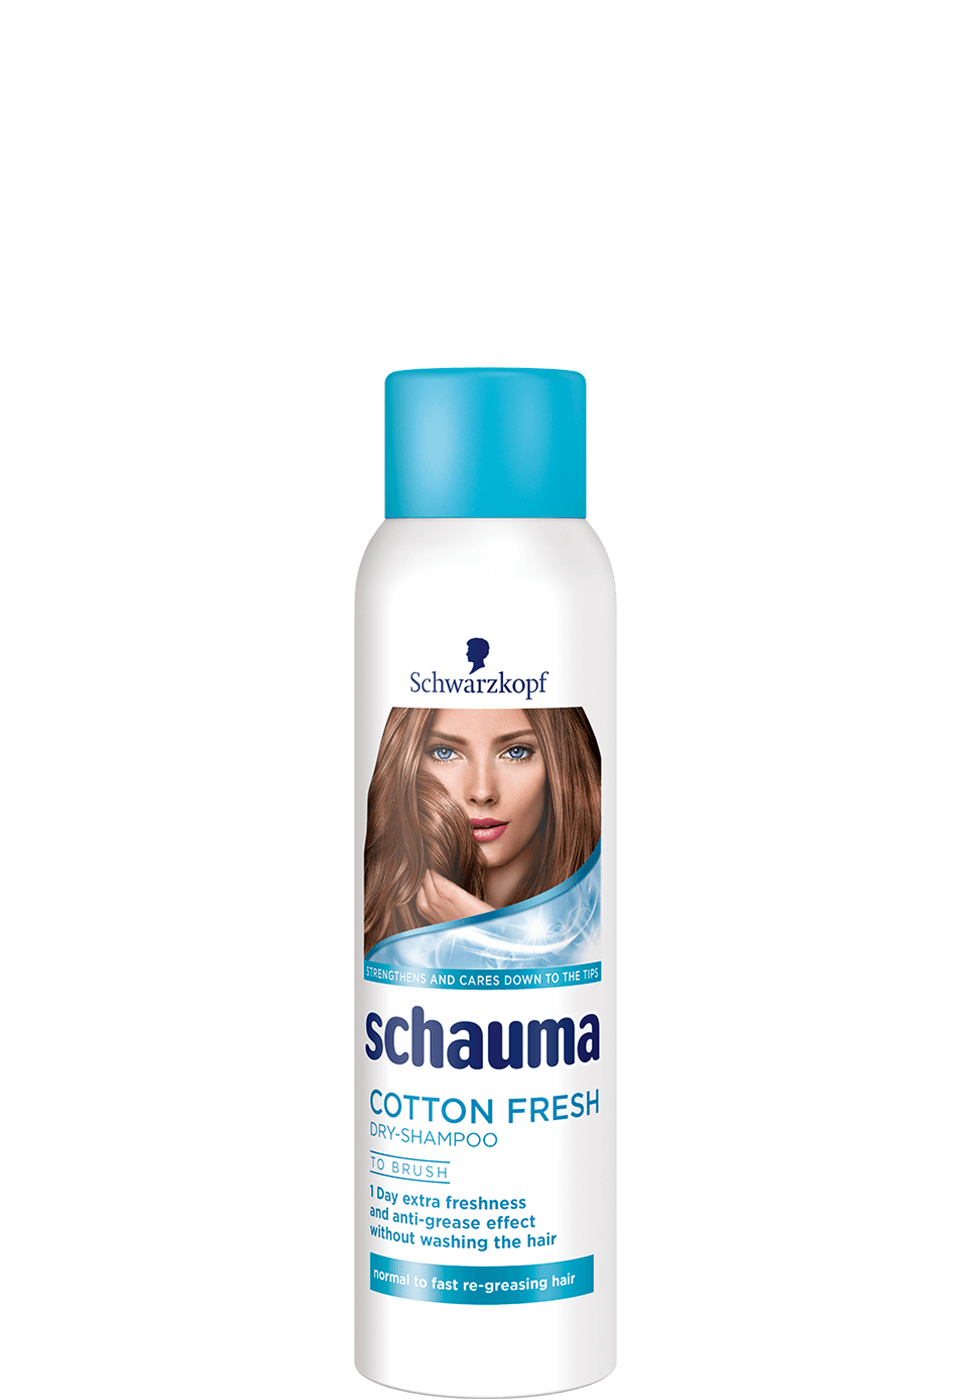 schauma_com_cotton_fresh_dry_shampoo_970x1400